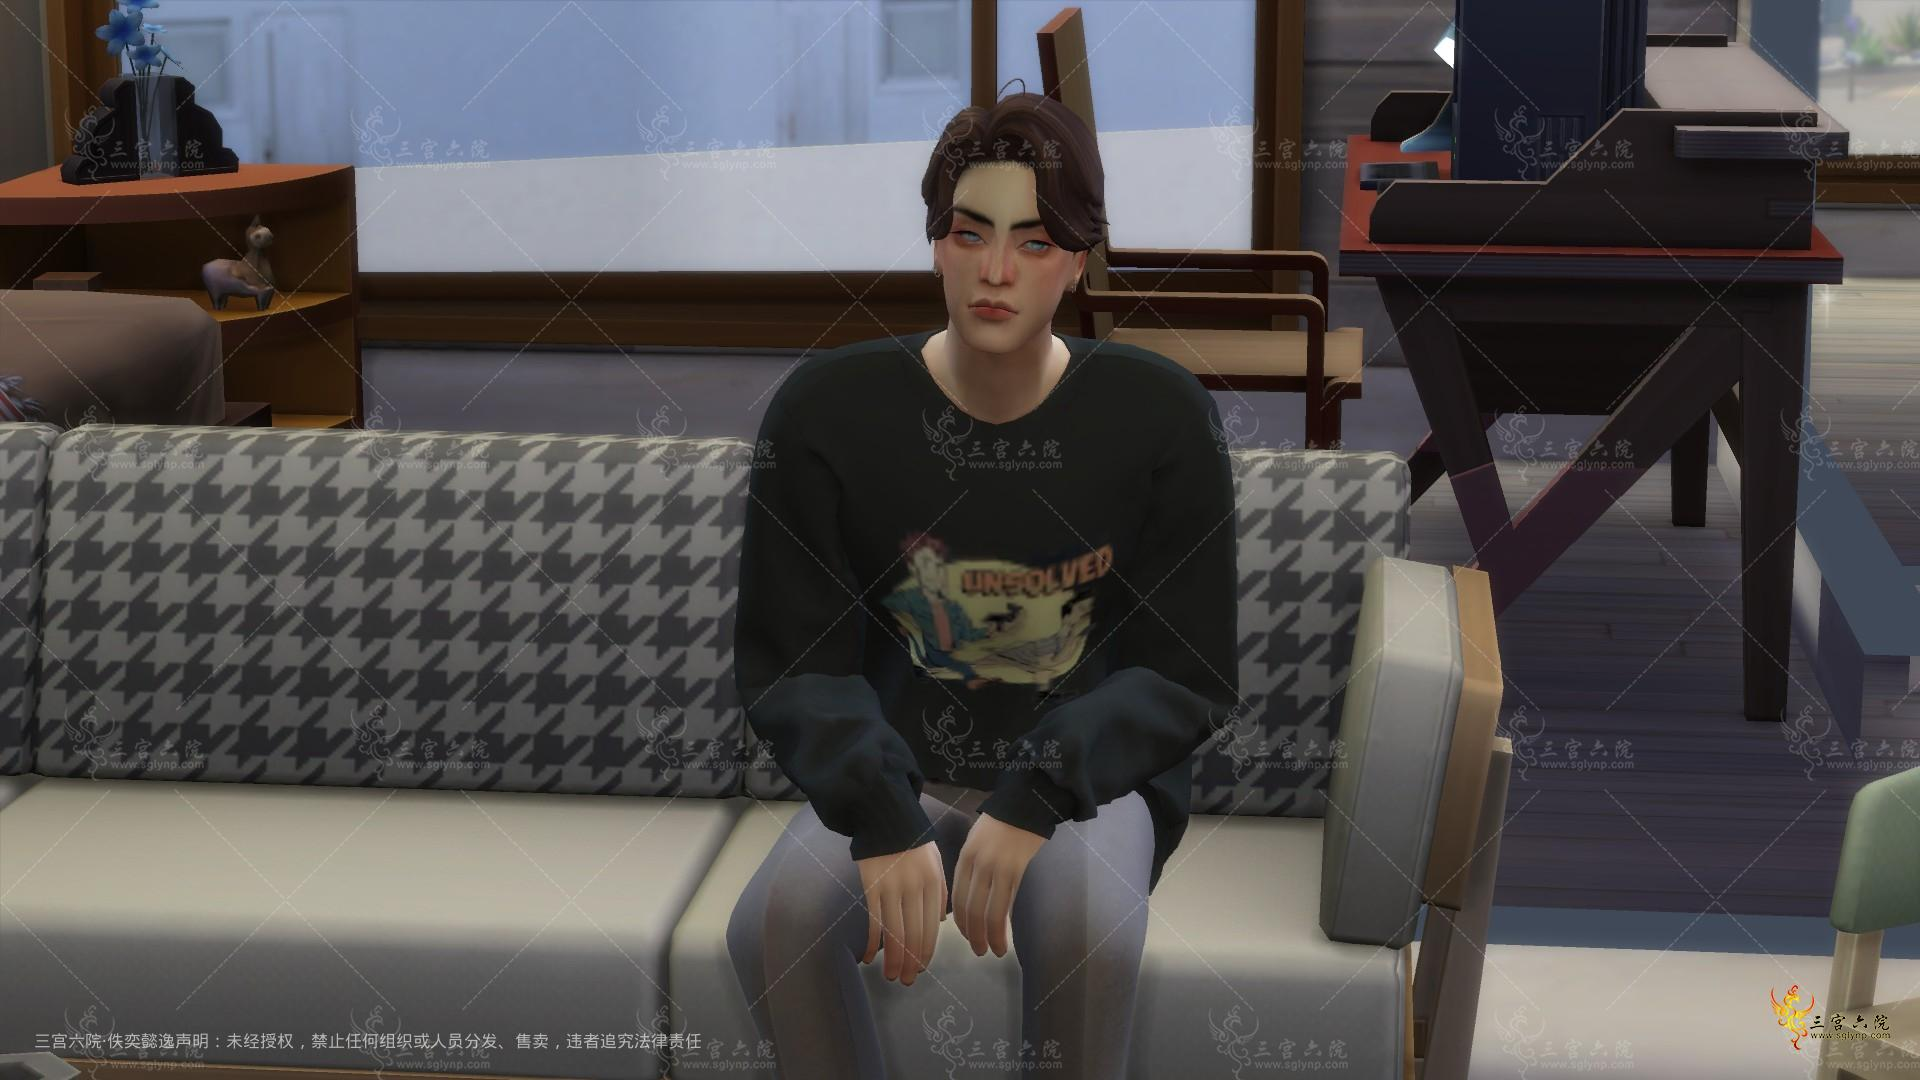 The Sims 4 2021_9_8 10_59_38.png